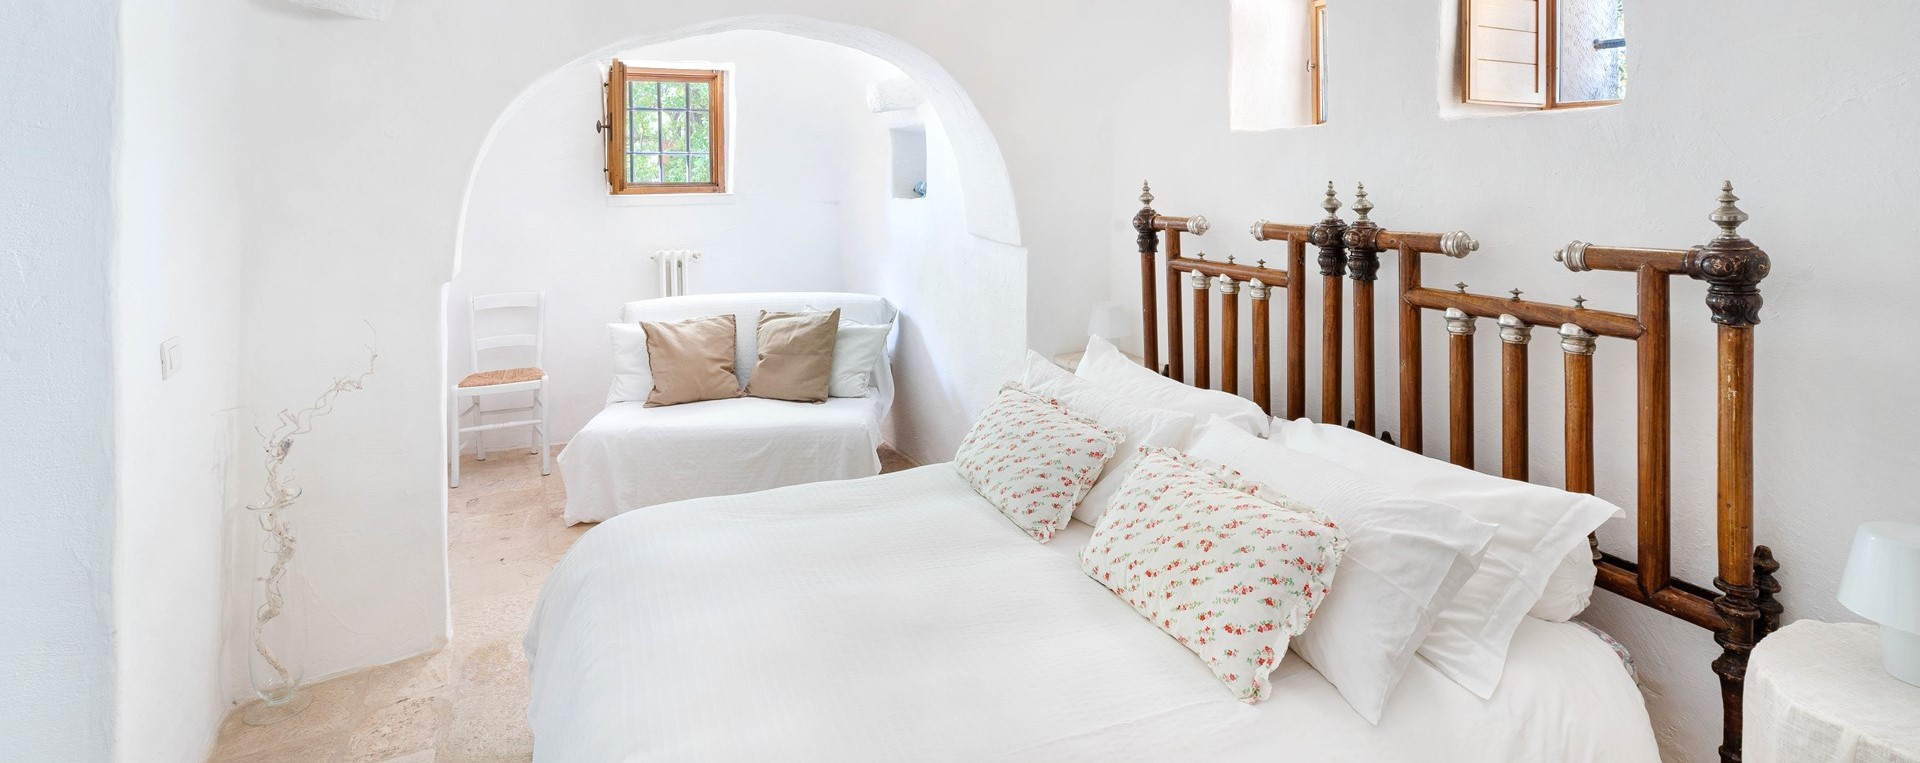 trulli-volpe-double-bedroom-1